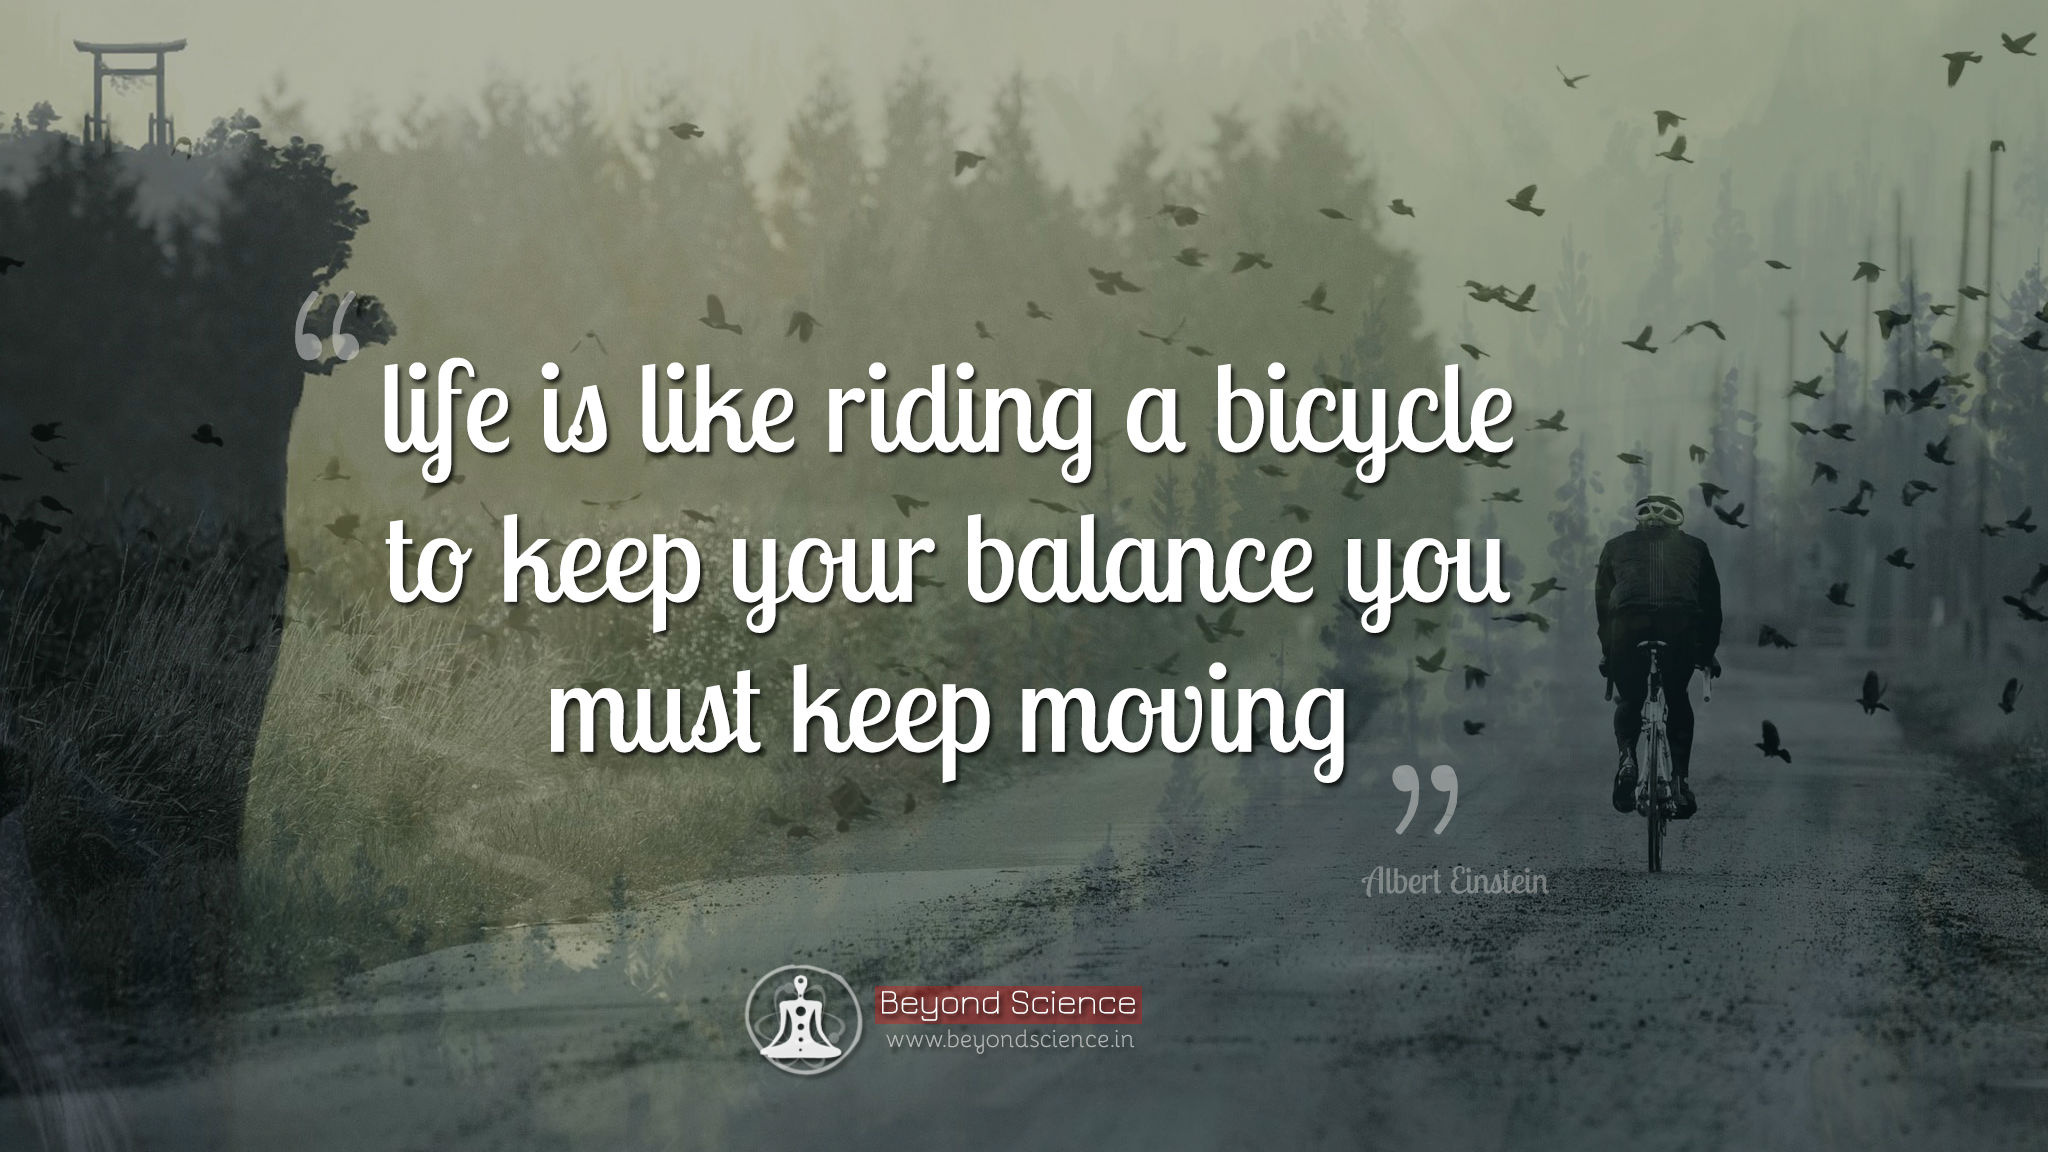 Life Quotes: Life Is Like Riding A Bicycle To Keep Your